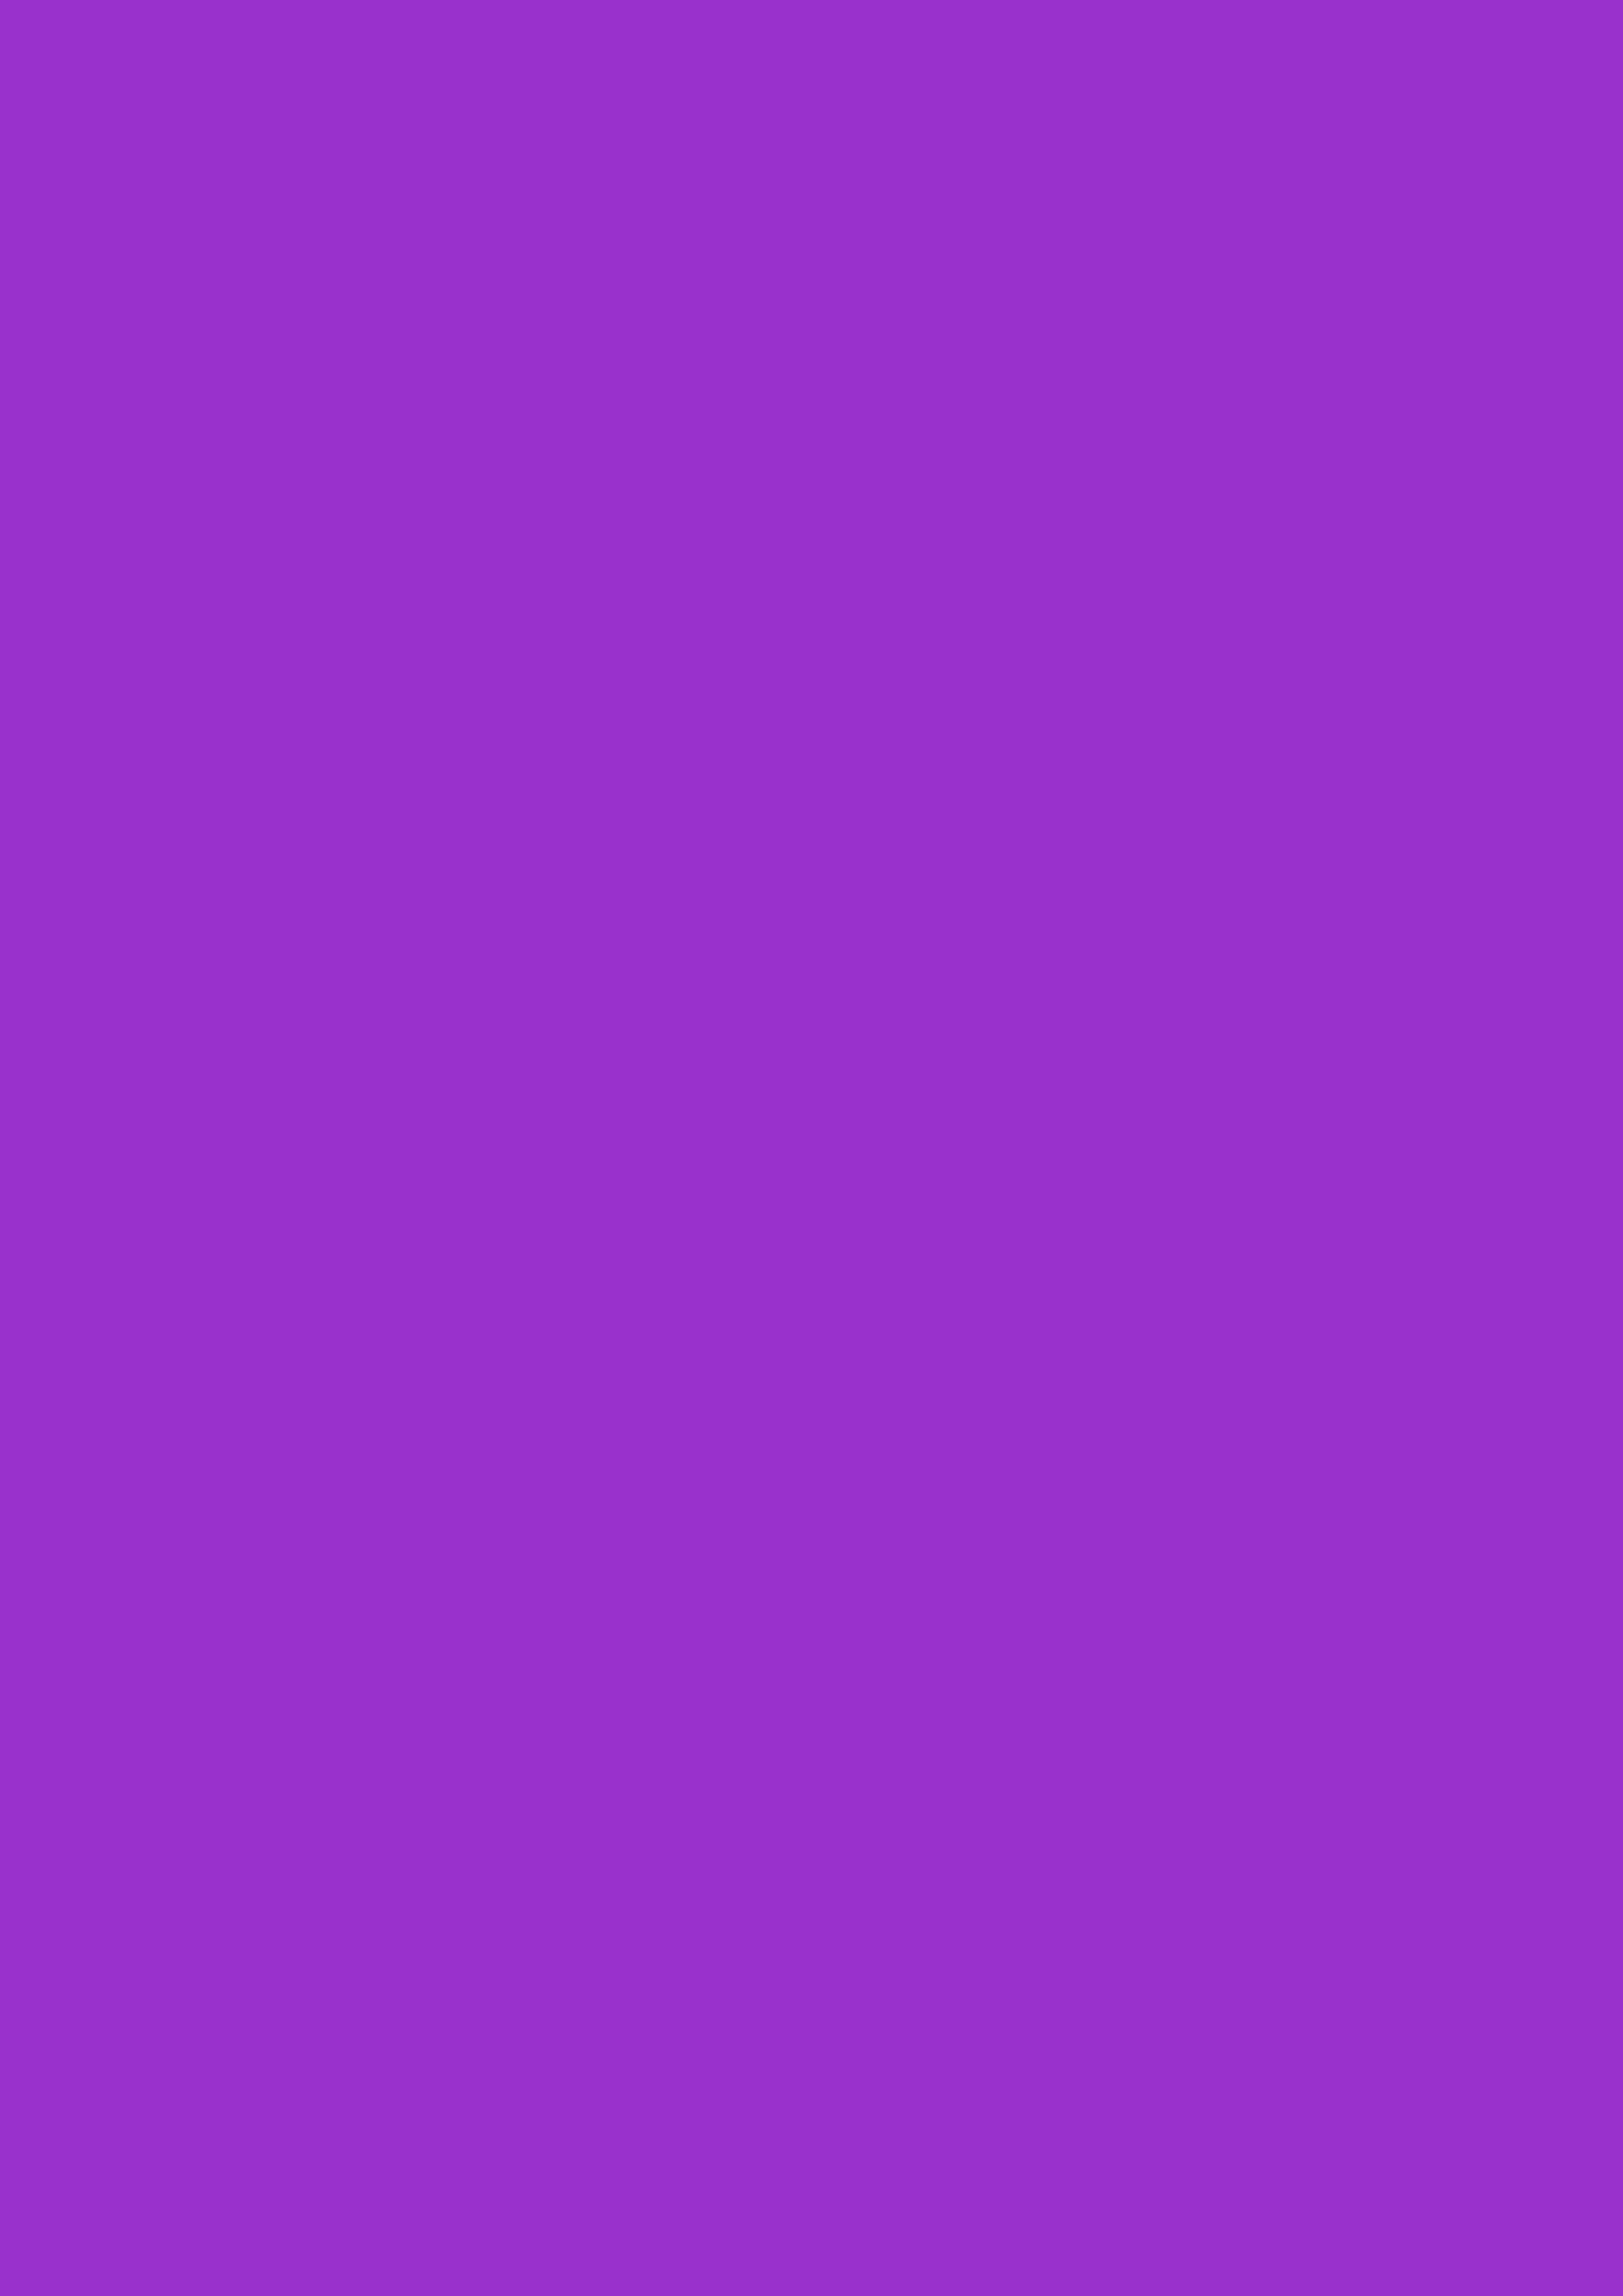 2480x3508 Dark Orchid Solid Color Background